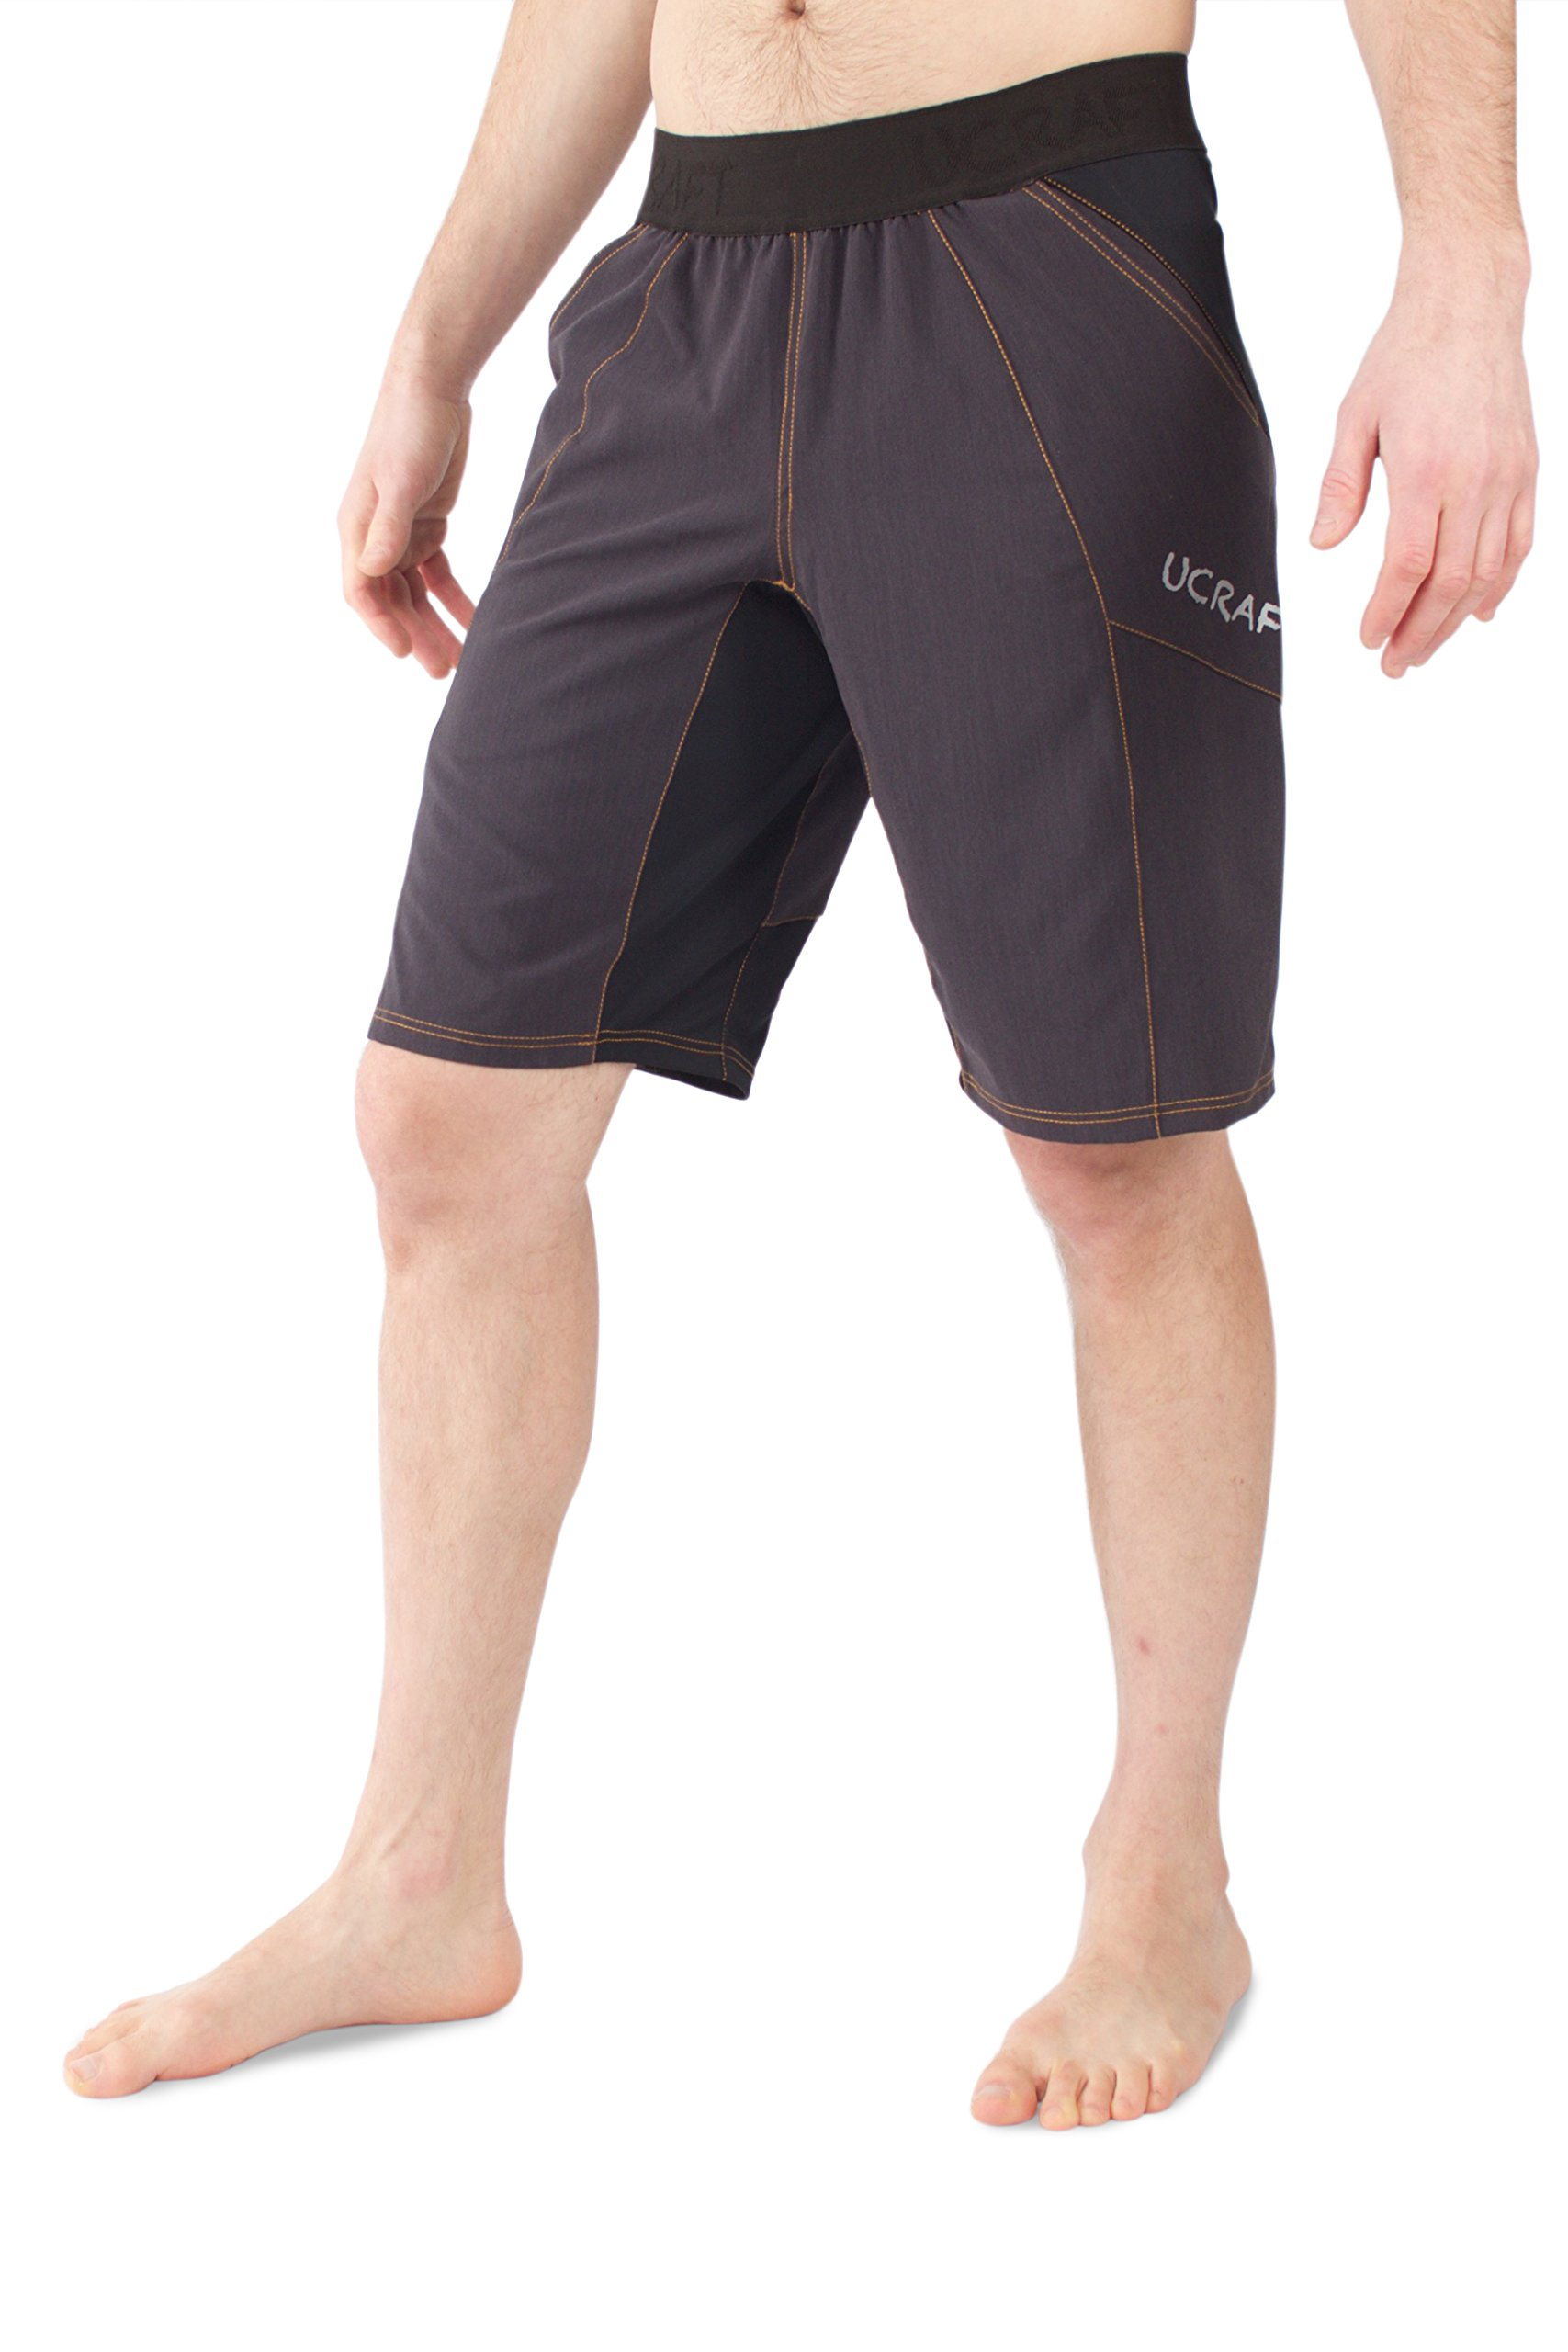 Ucraft Climbing Anti-Gravity Shorts. Stretchy, Lightweight and Breathable Multisport Shorts. (Graphite, L) by Ucraft